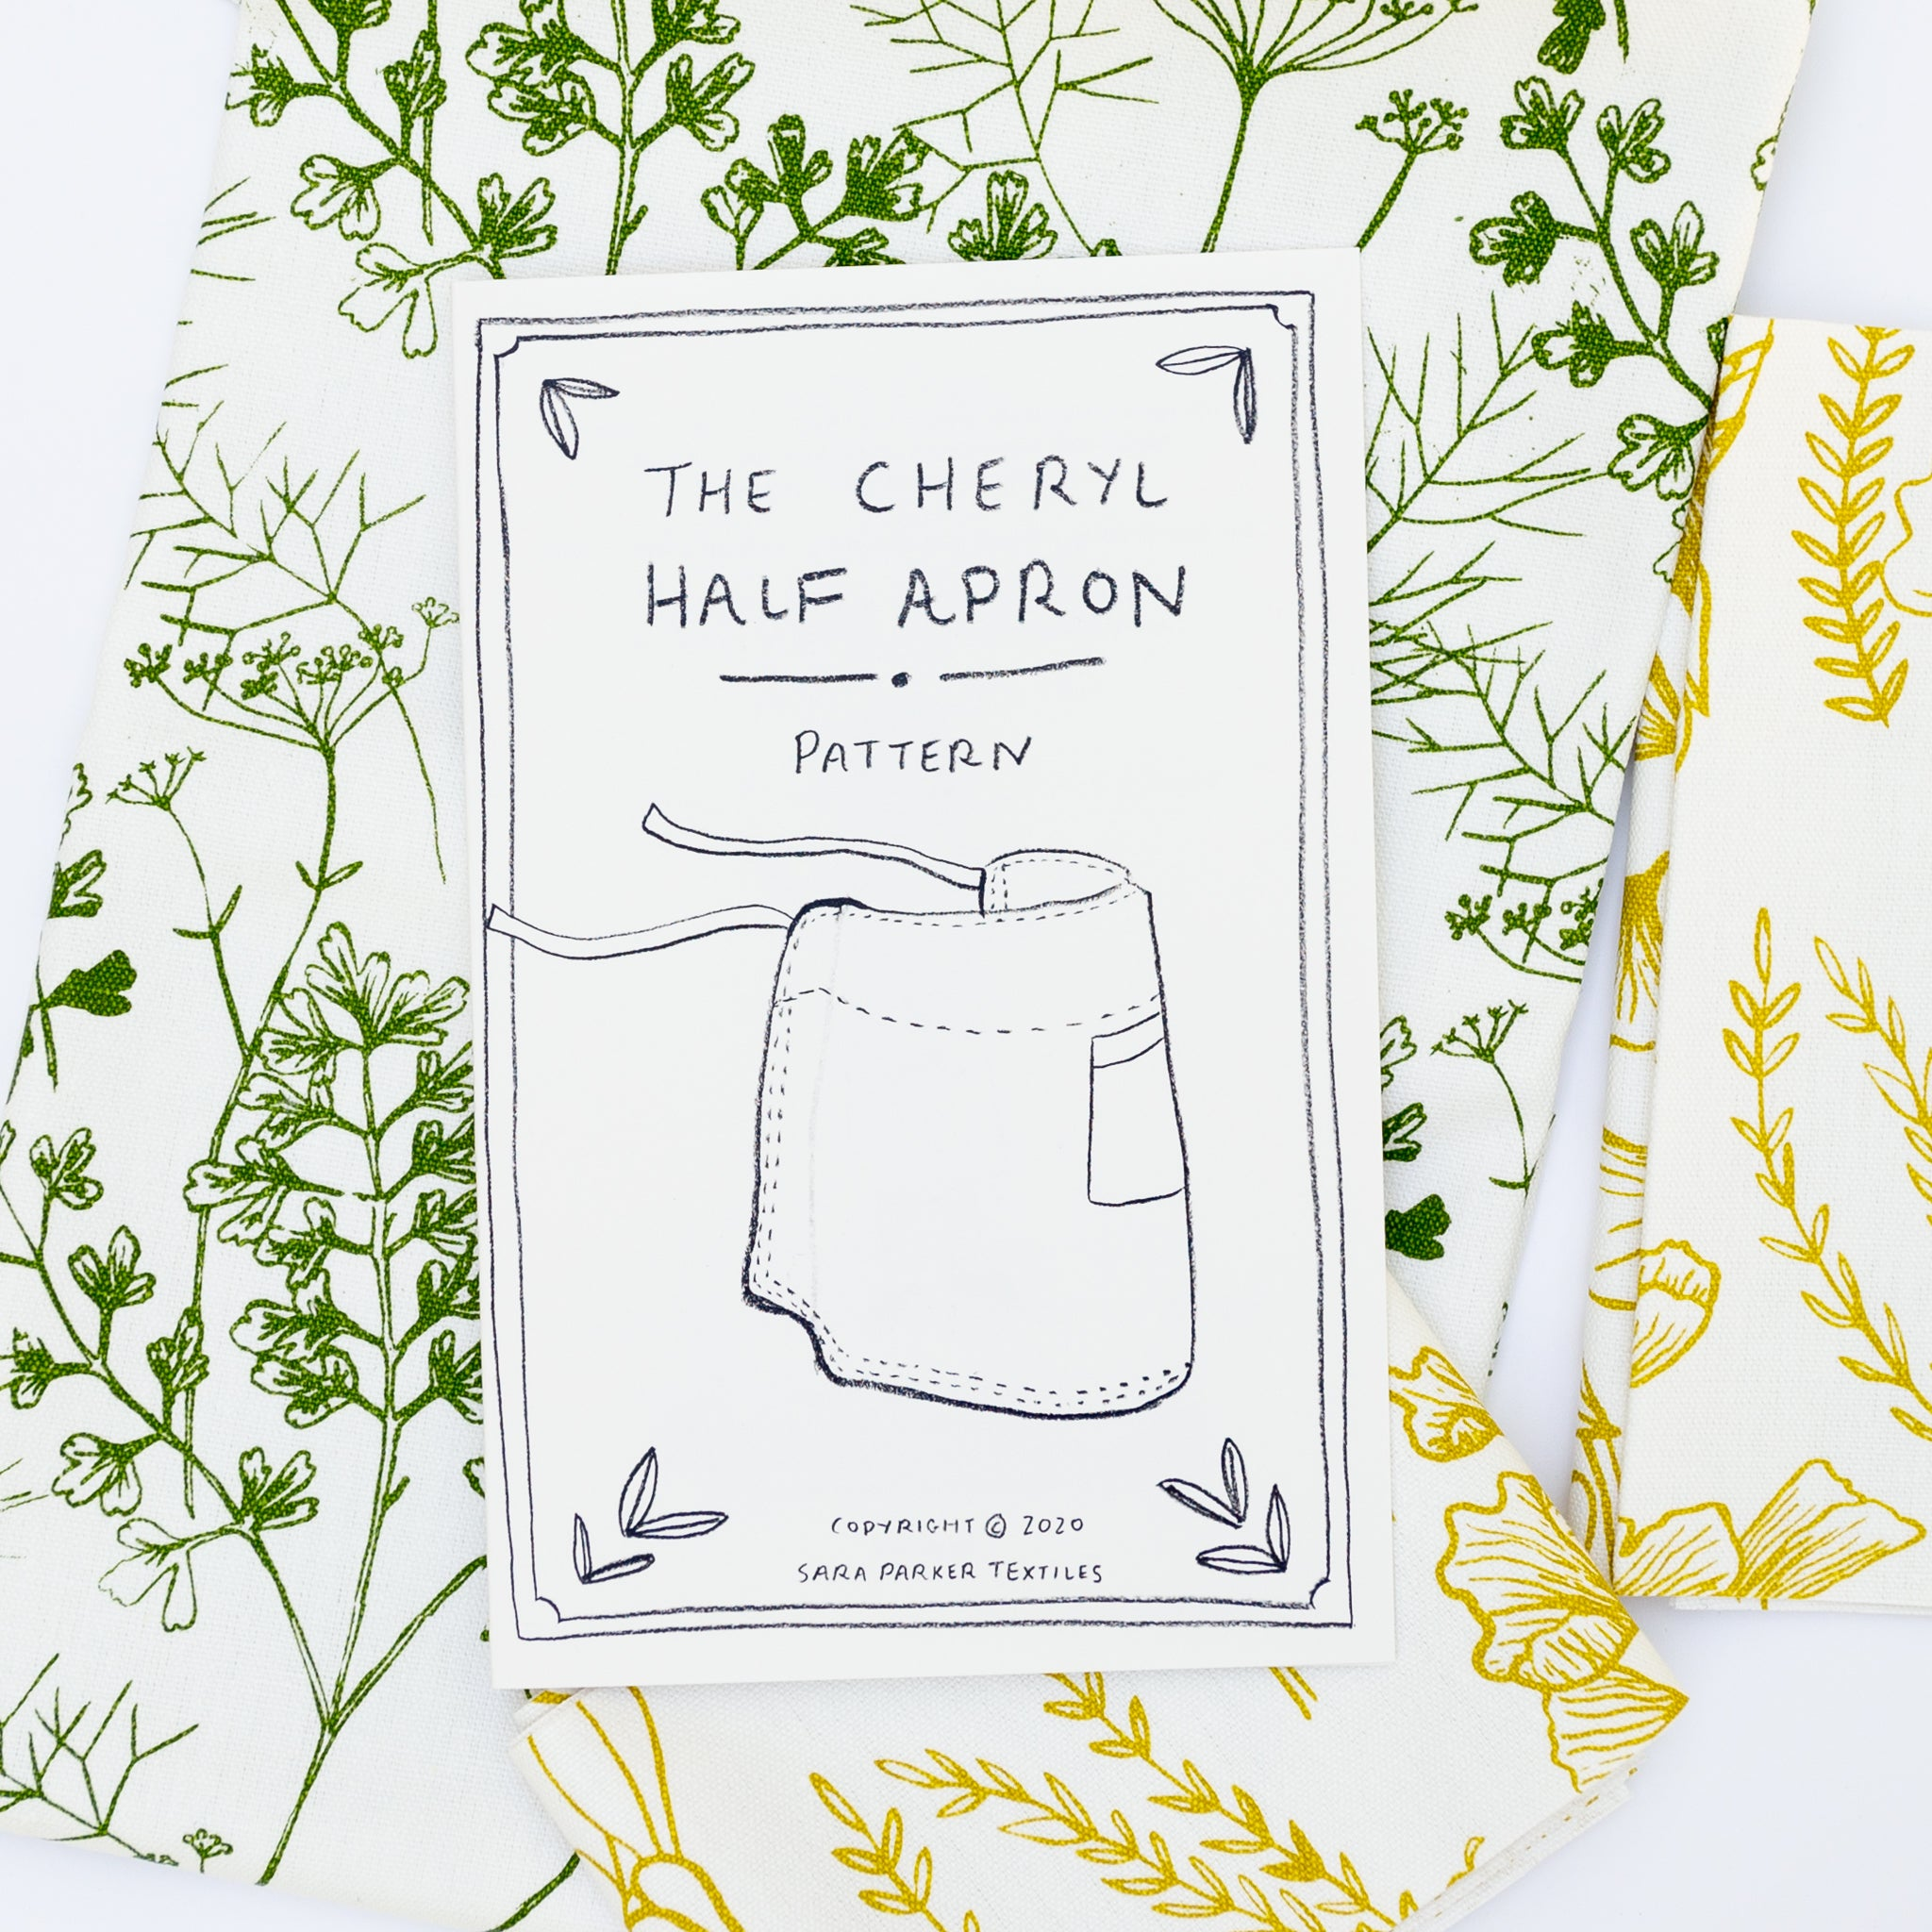 Kit: Cheryl Half Apron No. 1